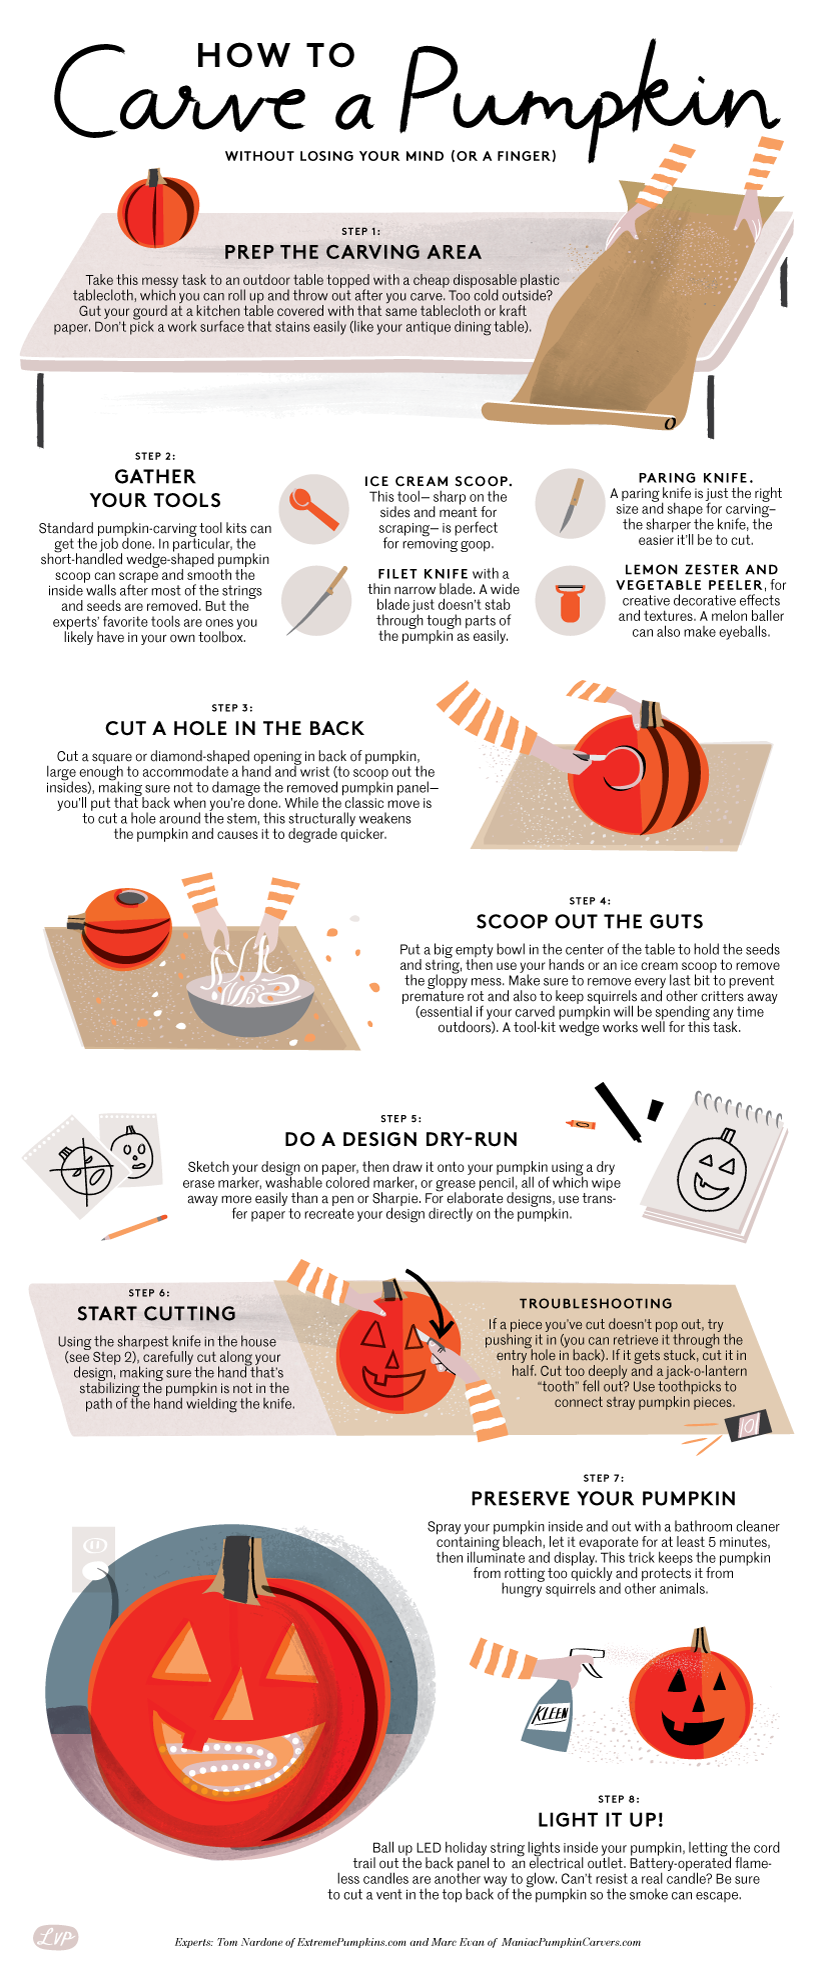 How to carve a pumpkin: guide and steps infographic to pumpkin carving